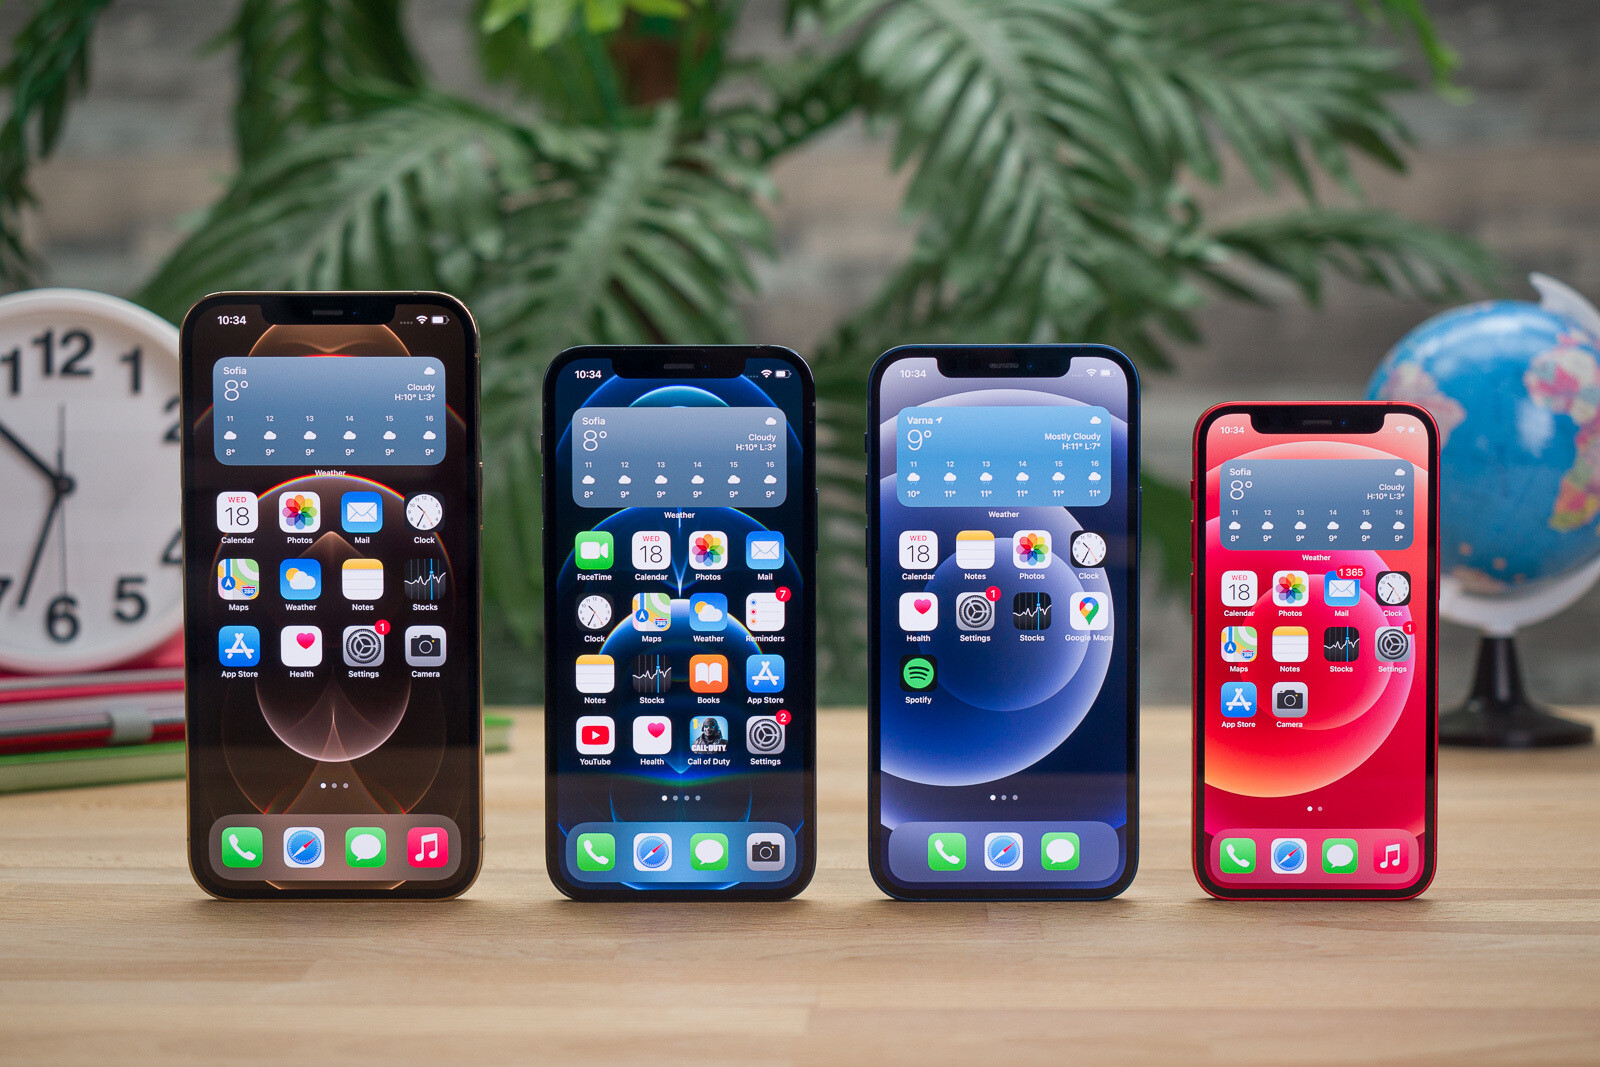 The unlocked 12 Pro Max is Apple's largest, best spec'd iPhone that is guaranteed to work on all major carriers - Best unlocked phones that work on Verizon, T-Mobile or AT&T out of the box